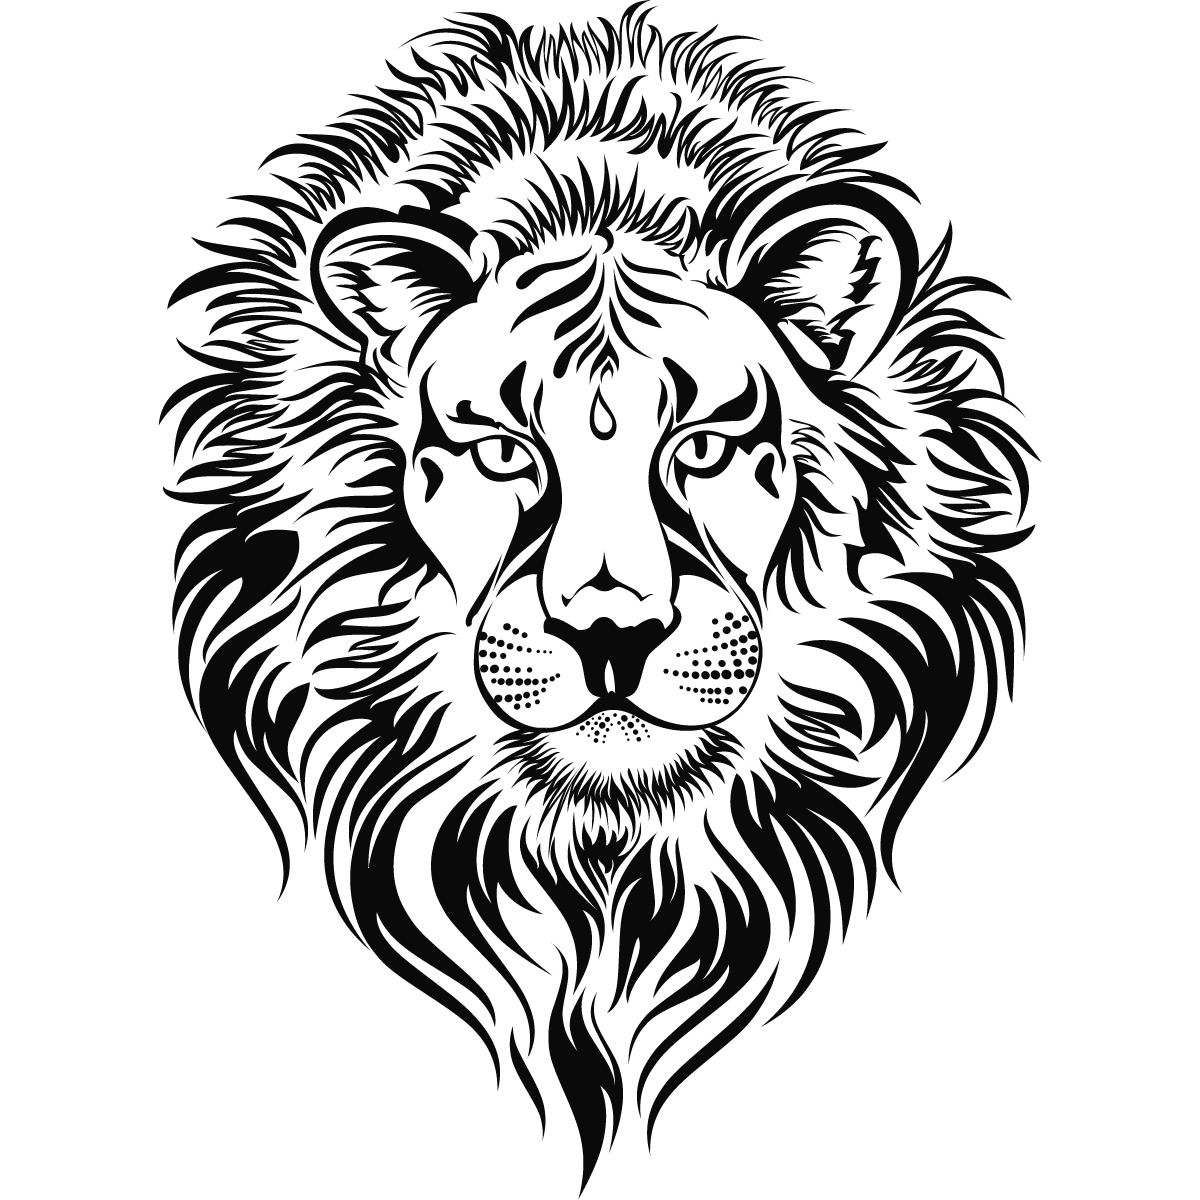 Lion Coloring Pages   Free download best Lion Coloring Pages on ...